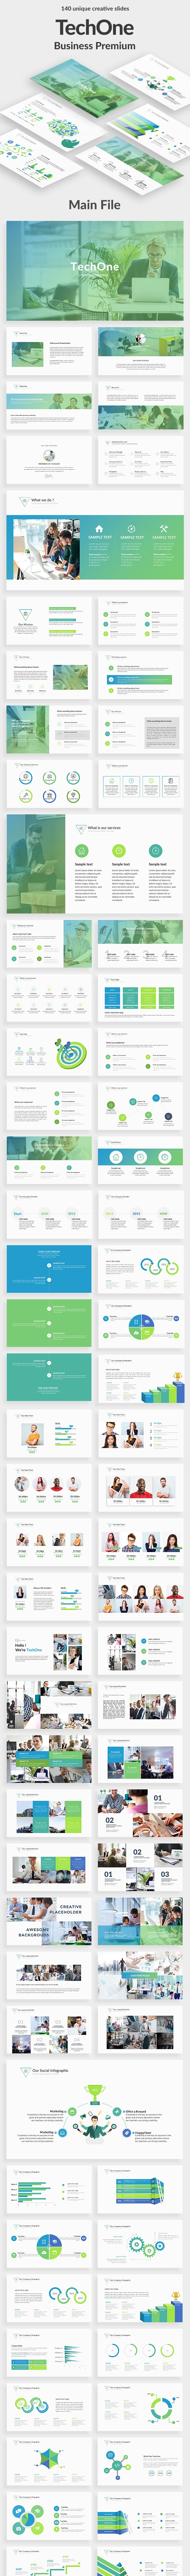 TechOne Business Powerpoint Template - Business PowerPoint Templates